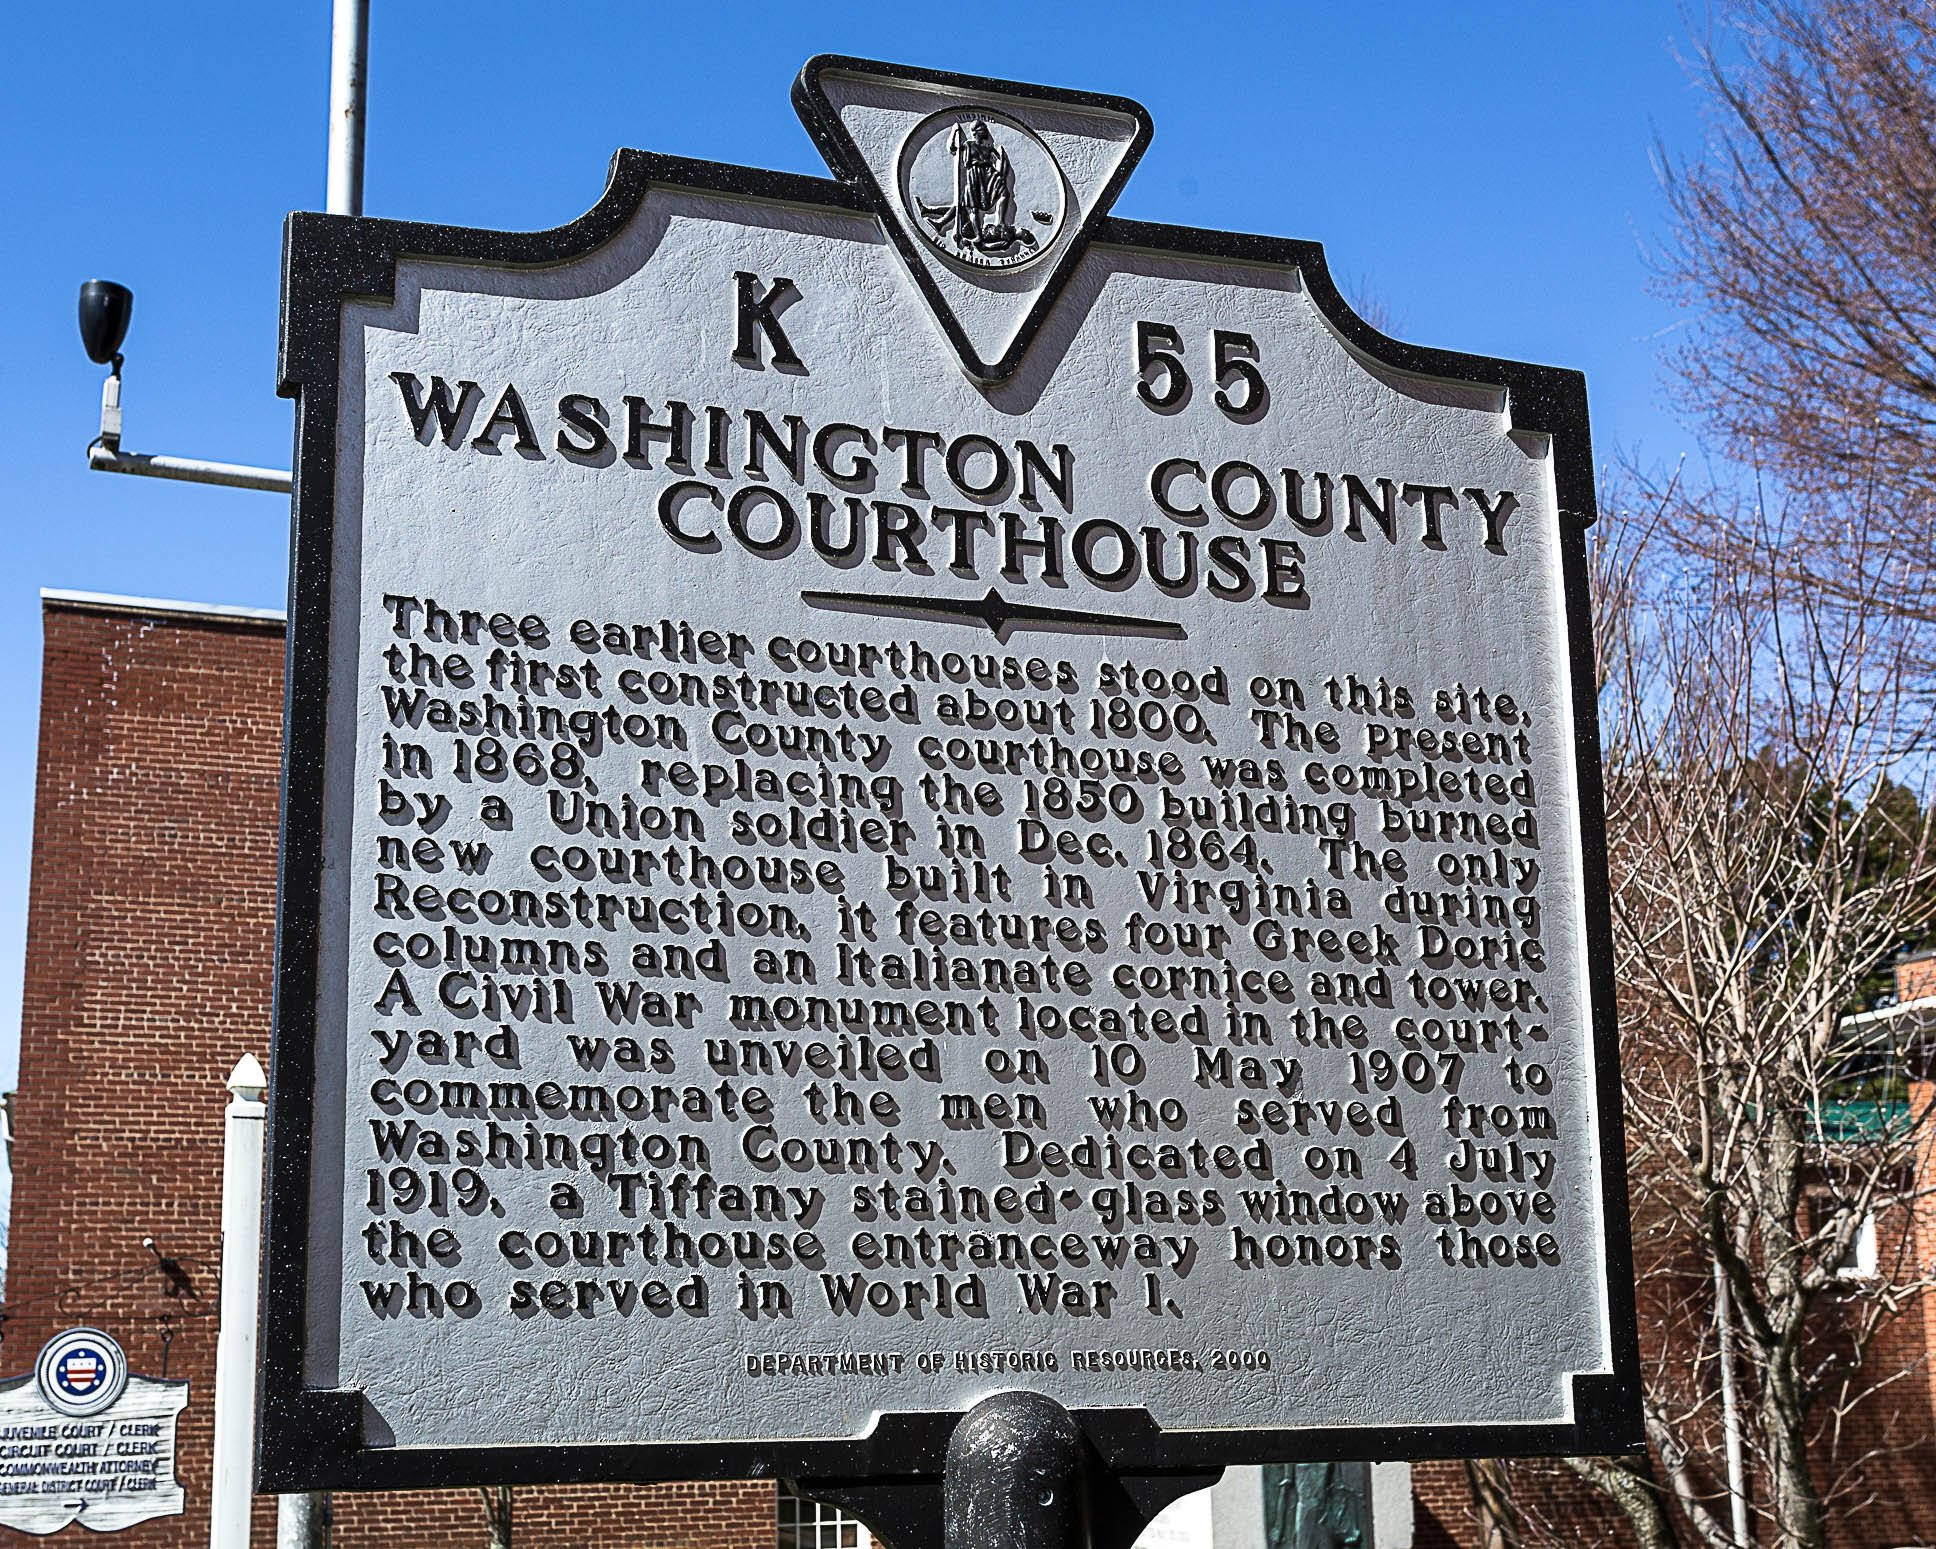 Washington County Courthouse historical marker